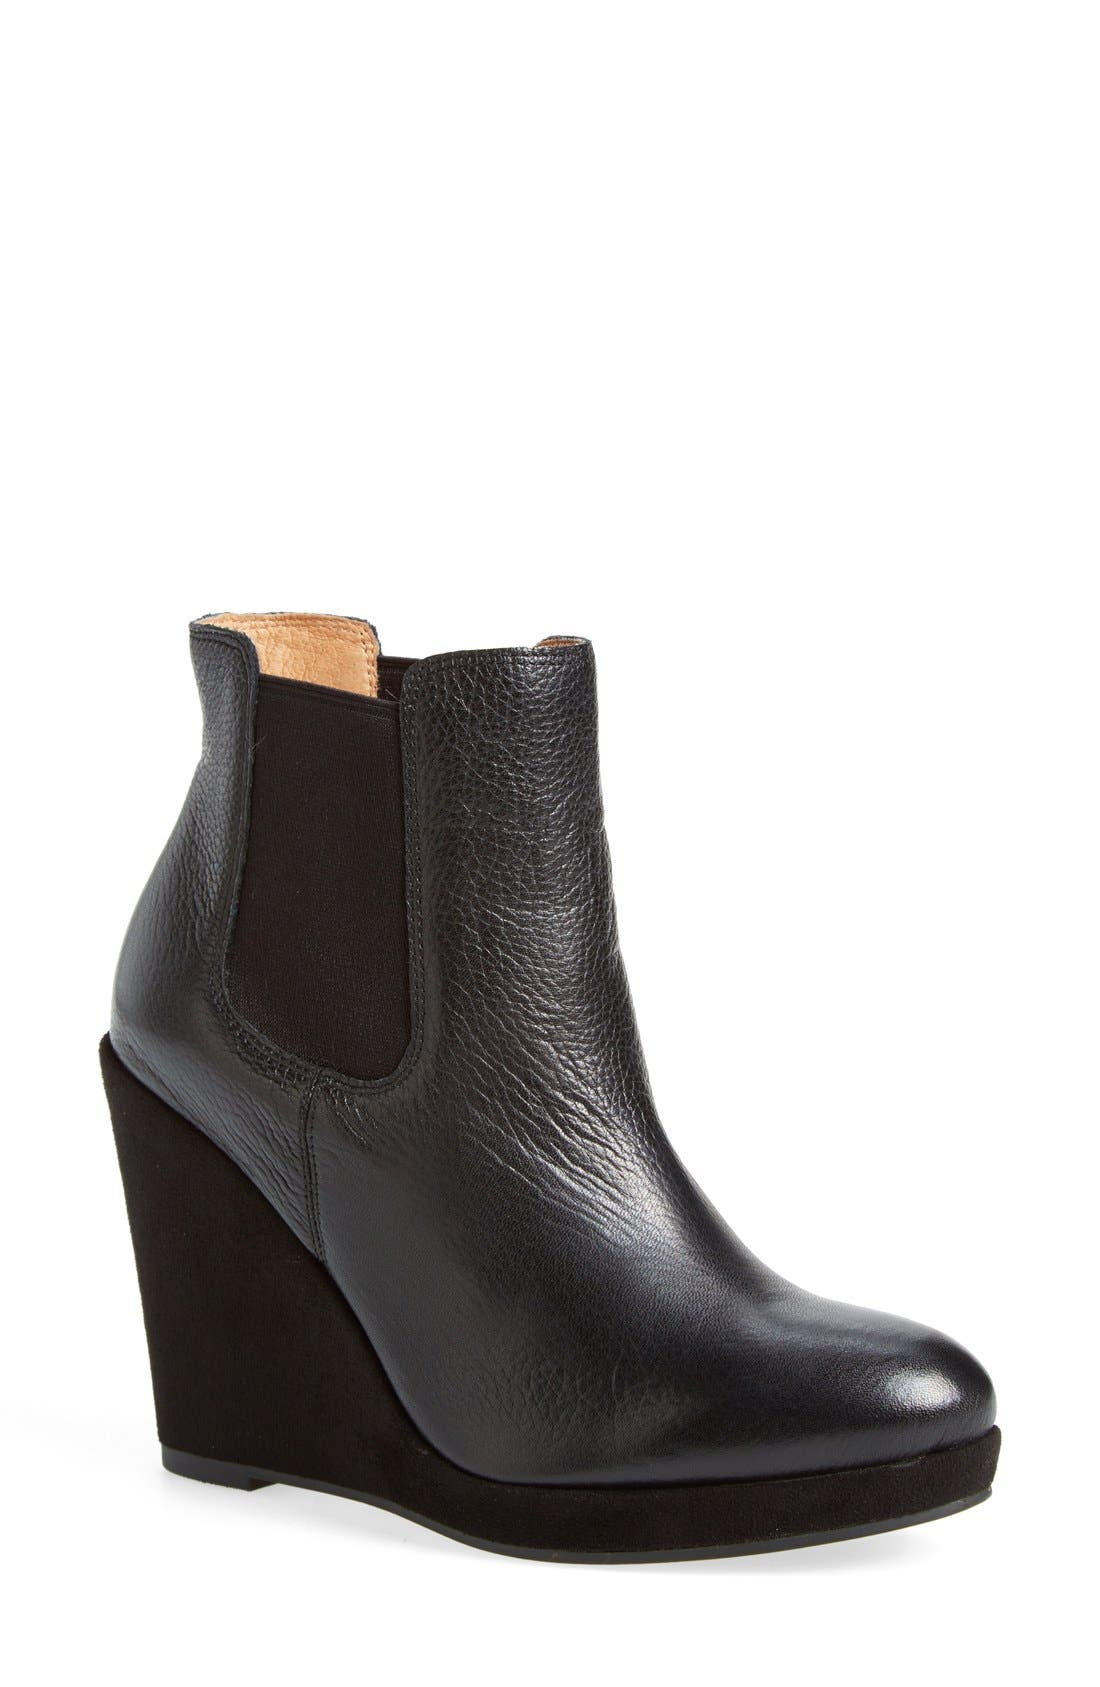 CORSO COMO Corso Como 'Coast' Wedge Bootie, Main, color, 001